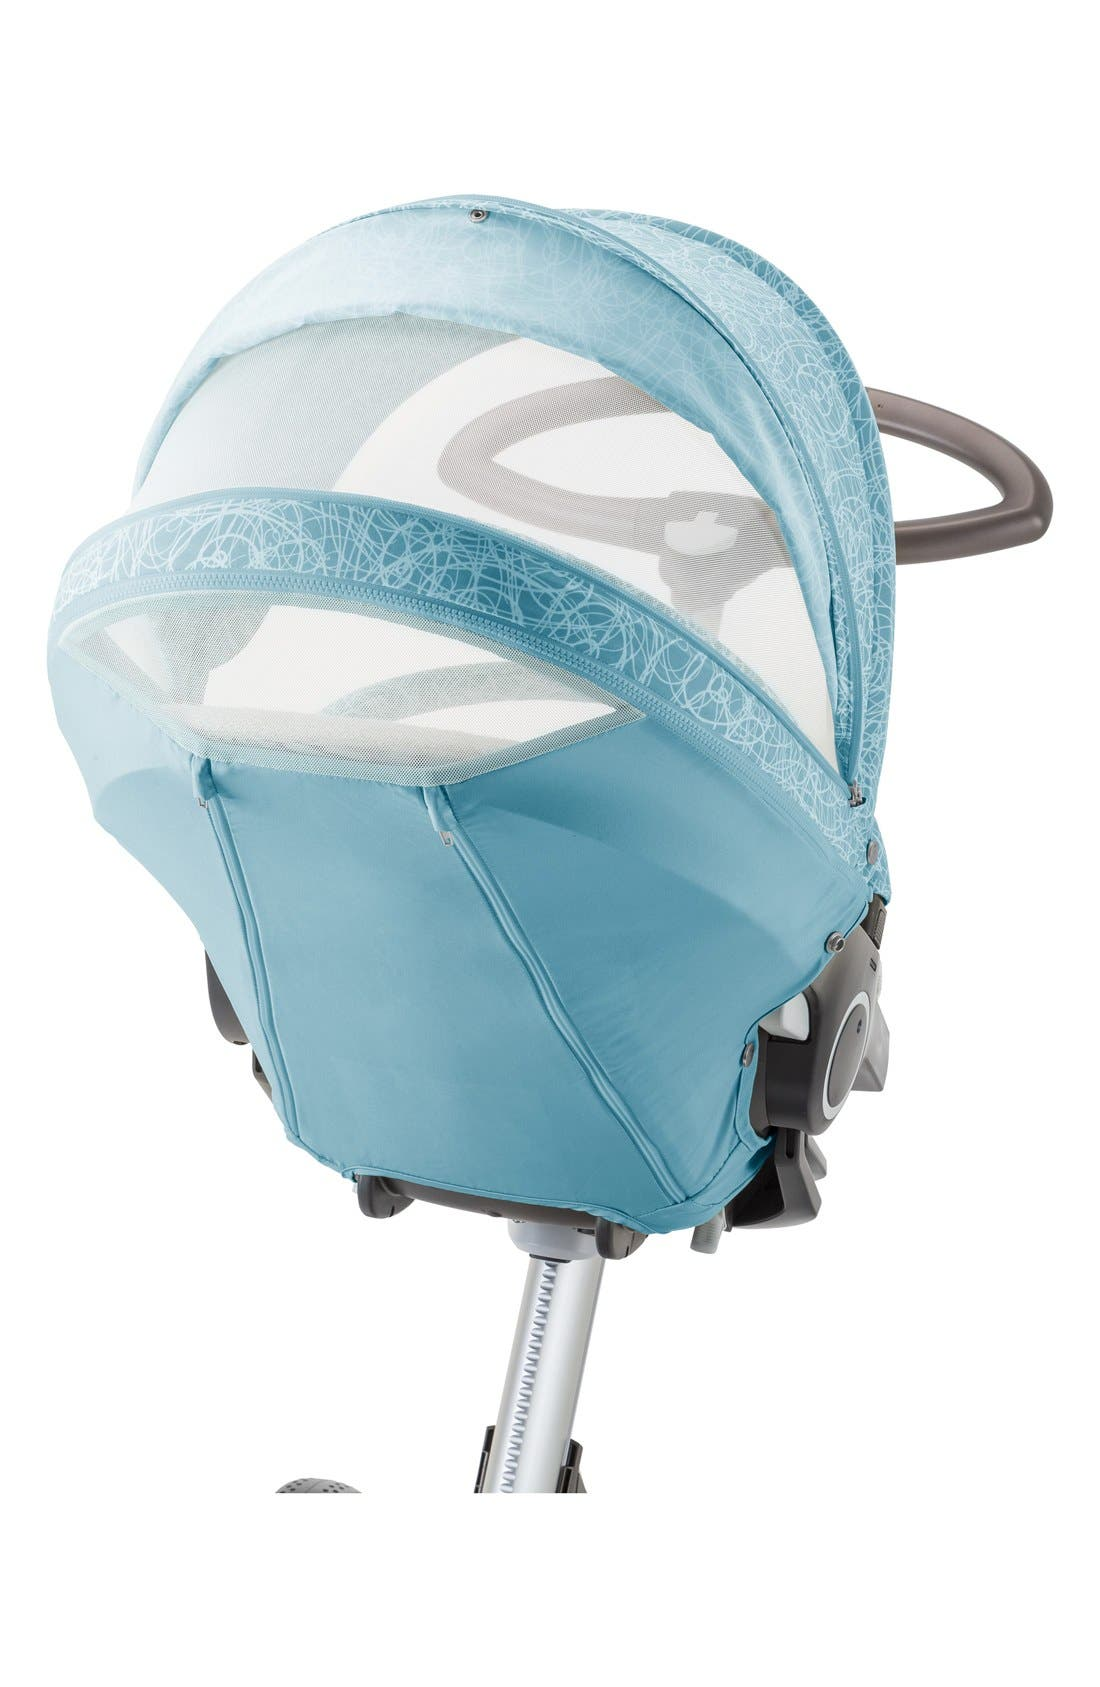 'Xplory<sup>®</sup> Stroller Summer Kit' Shade Set,                             Alternate thumbnail 2, color,                             450